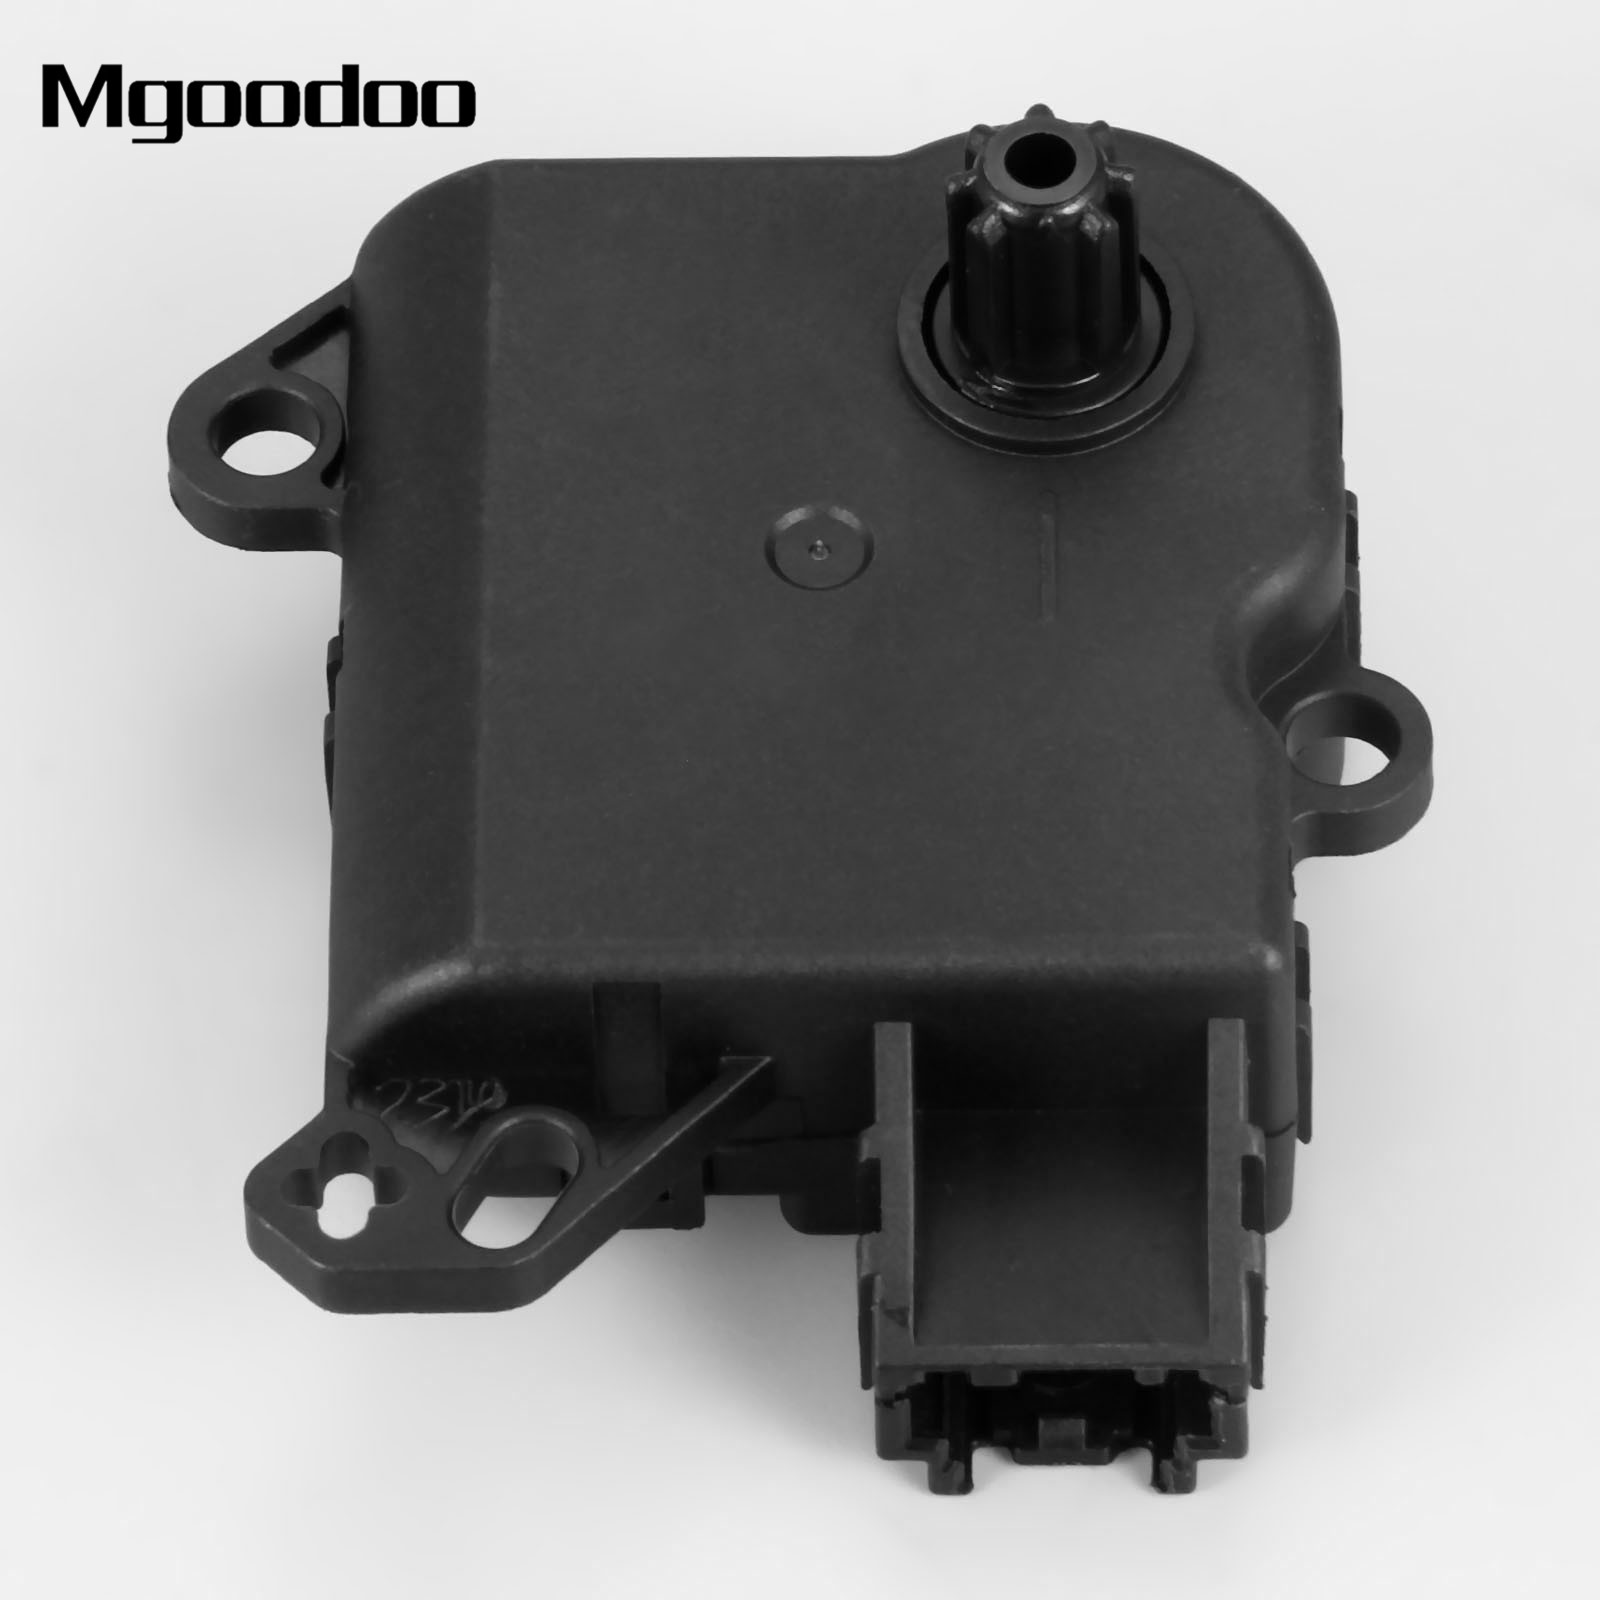 US $15 73 26% OFF|Mgoodoo HVAC A/C Heater Air Blend Door Actuator  AA5Z19E616C 604 234 For Ford Explorer Taurus X Police Flex Lincoln MKS  MKT-in